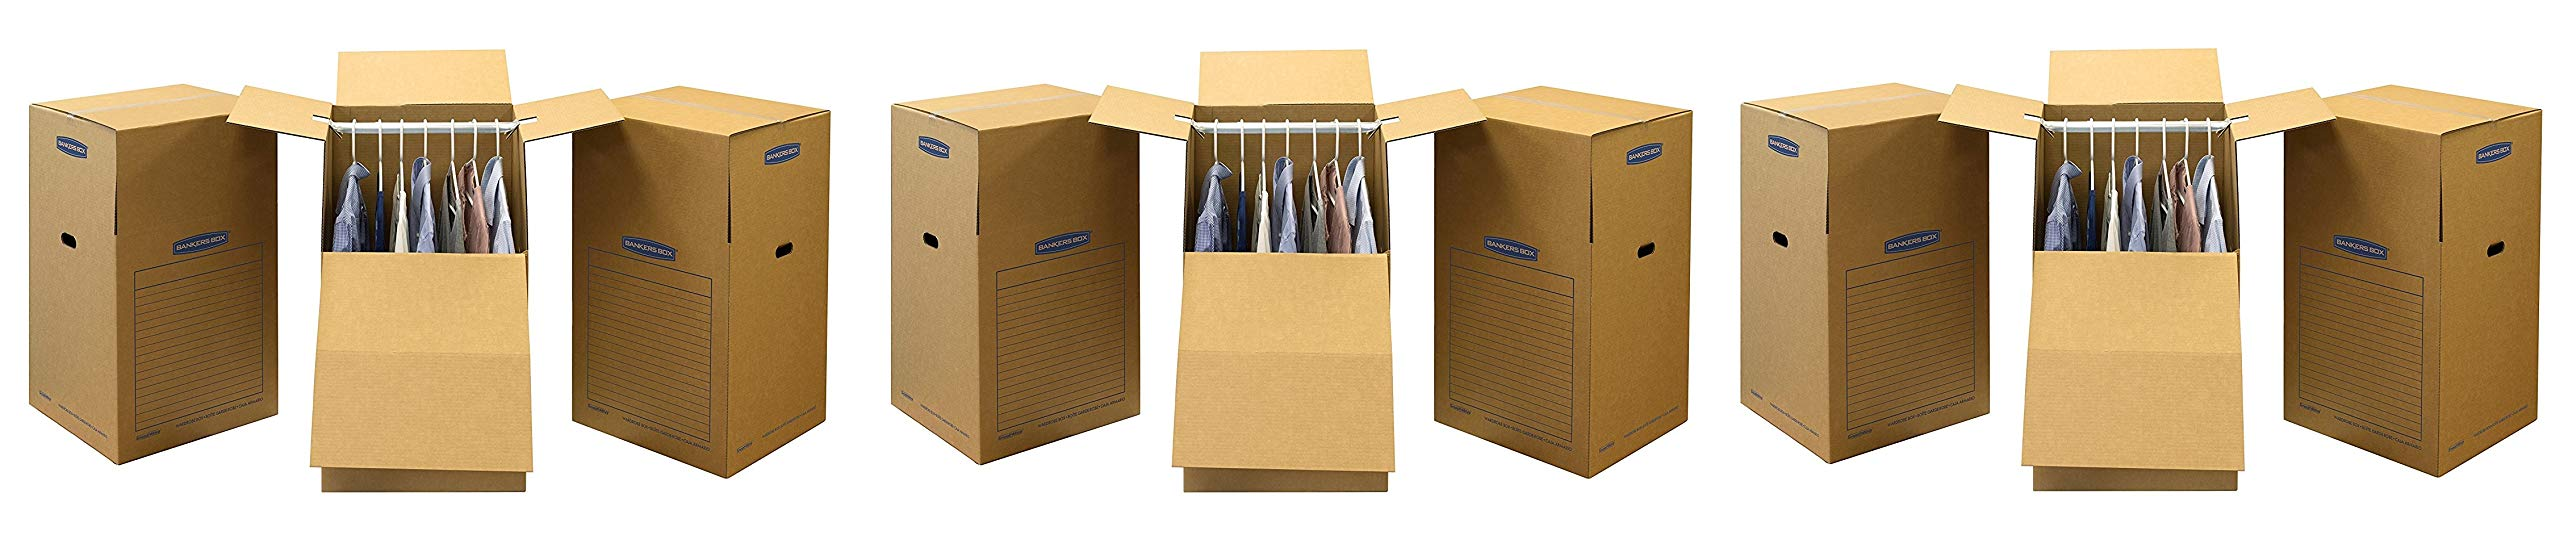 Bankers Box SmoothMove Wardrobe Moving Boxes, Tall, 24 x 24 x 40 Inches, (7711001) (3 X Pack of 3)